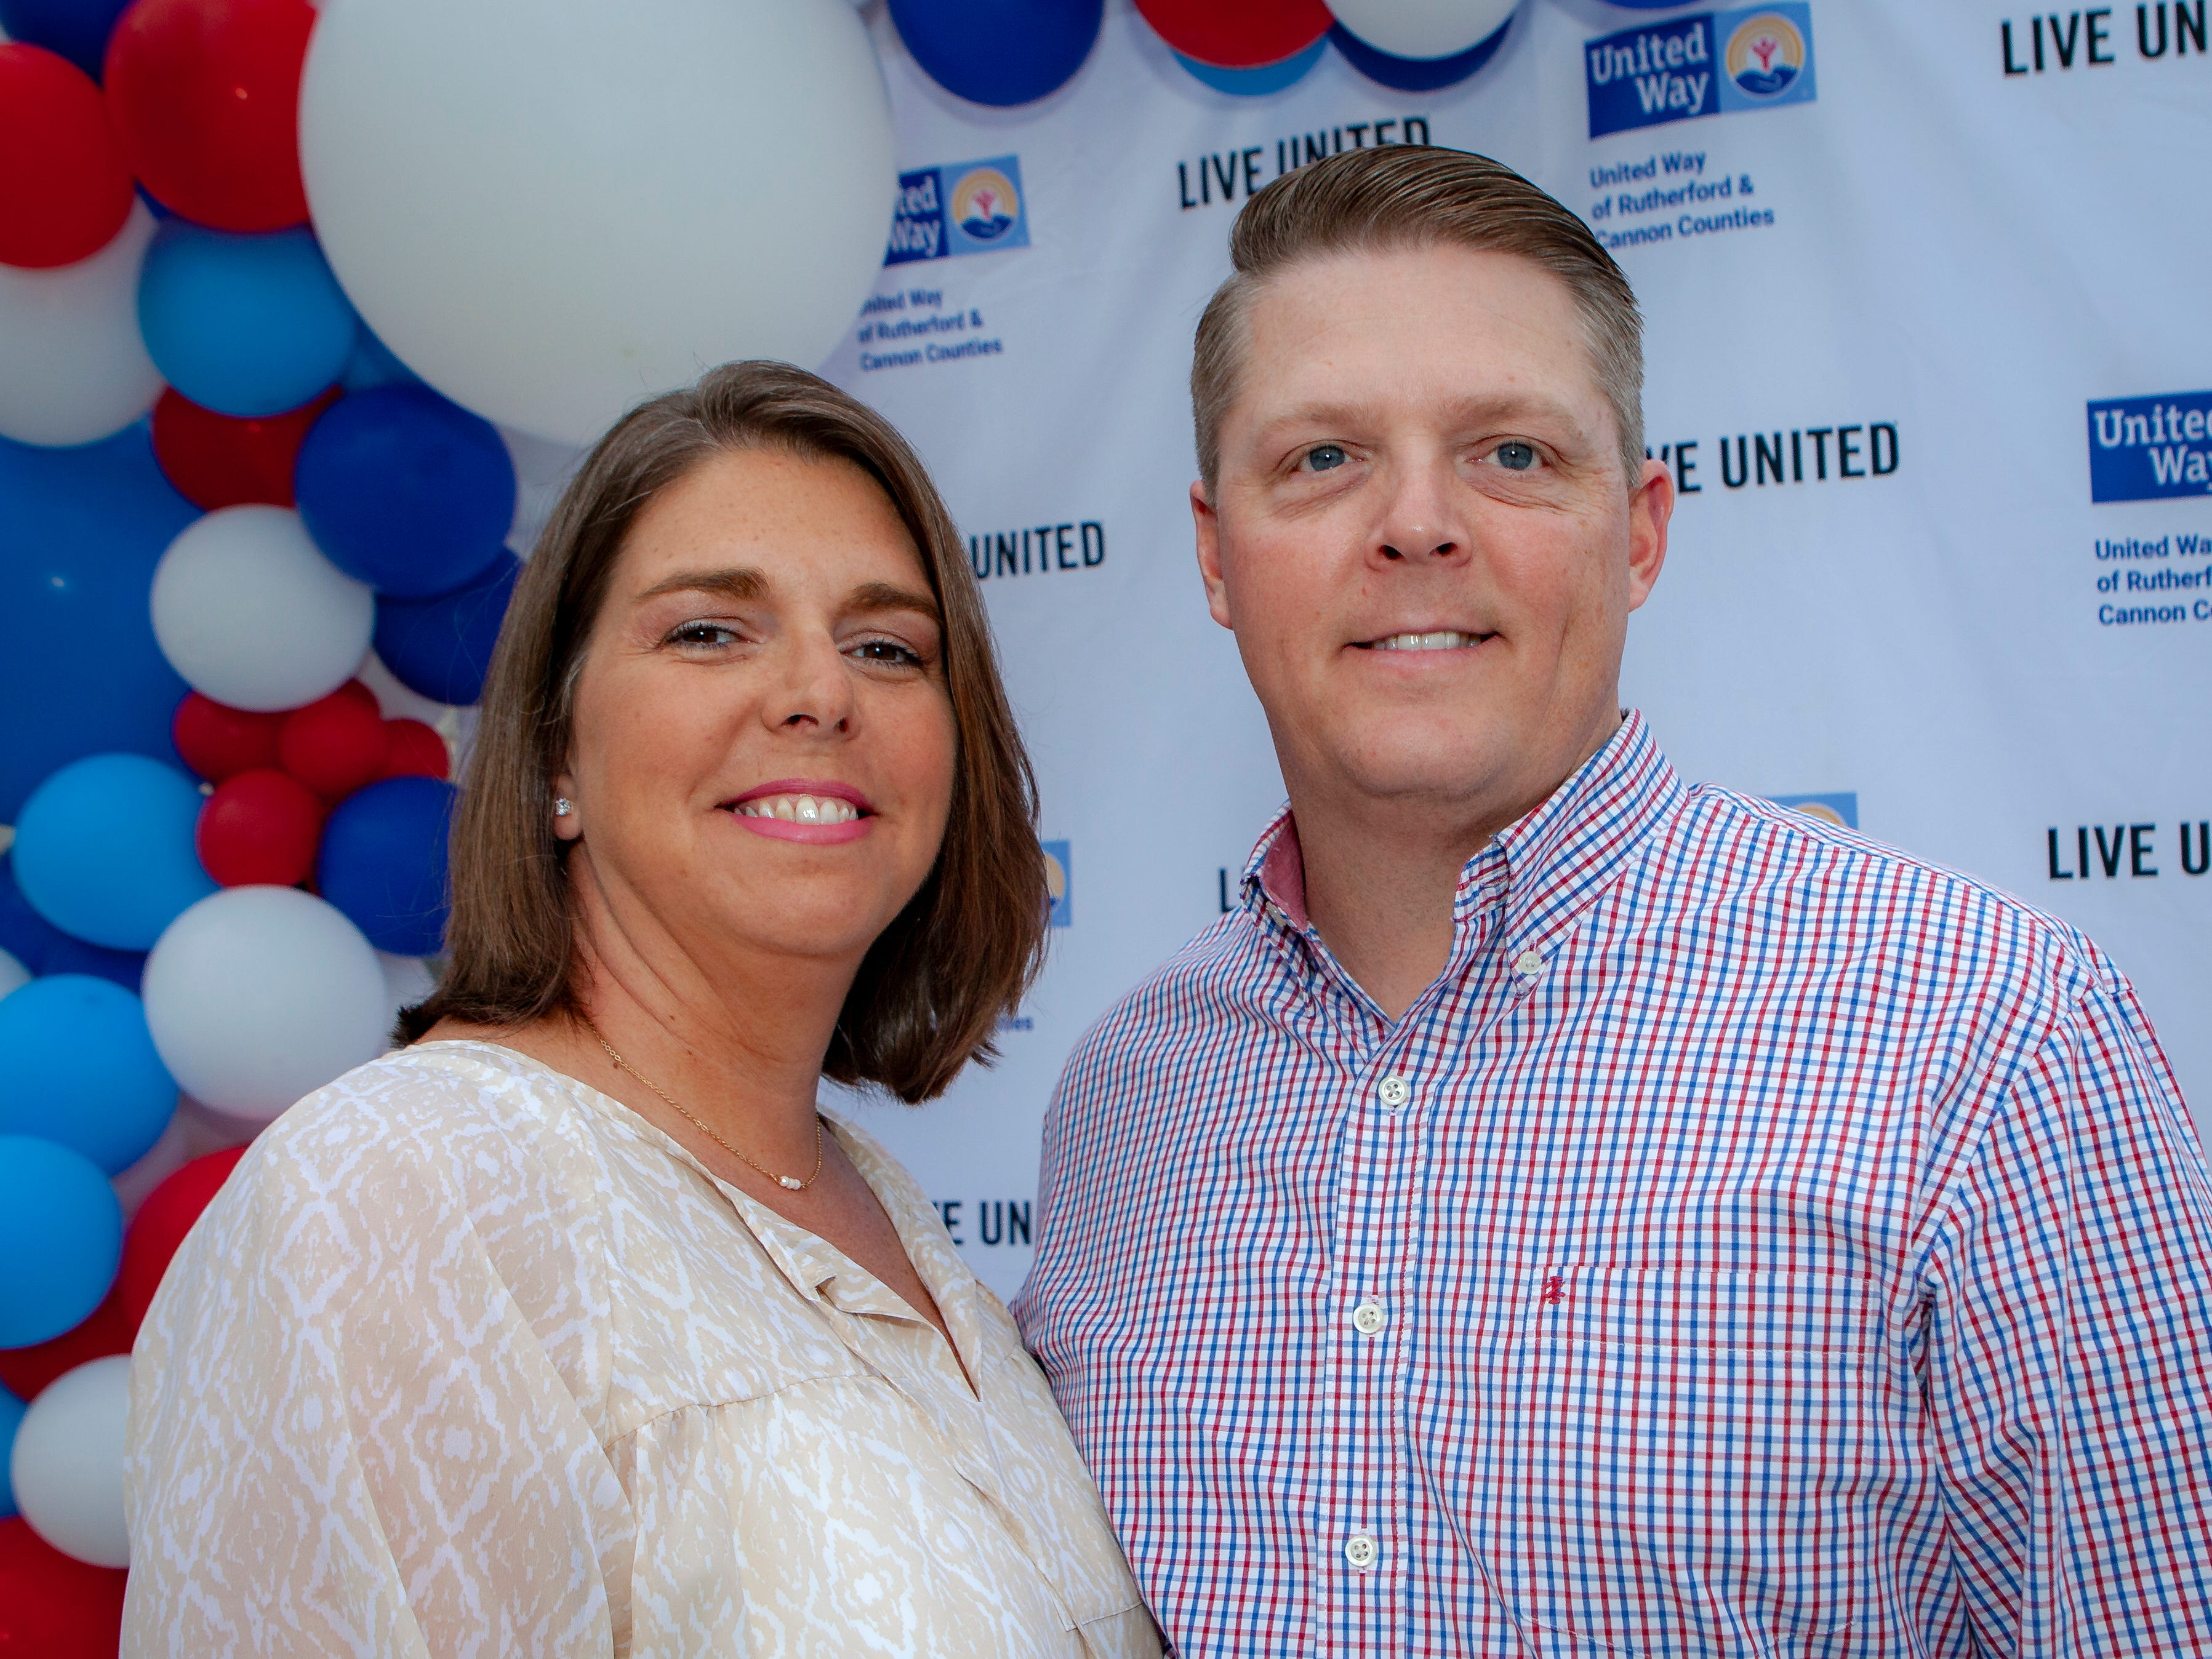 Angela and Erik Smithson enjoyed a Cajun feast under the stars at United Way's Red, White and Bayou, held Friday, May 10, 2019 at the home of Jimmy & Nikkole Aho.